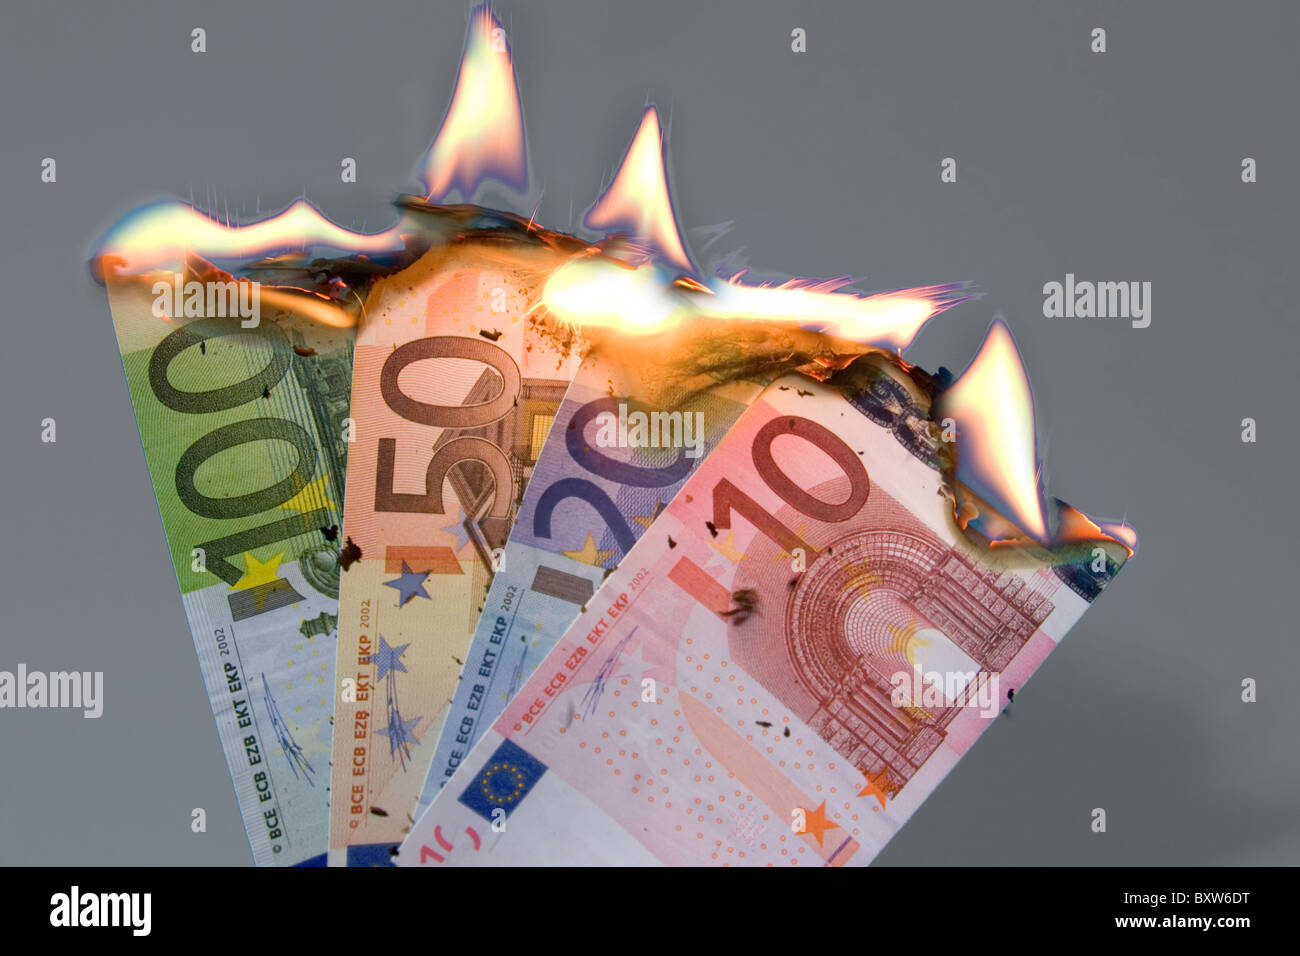 burning bank notes currency crisis of the EUR awaited collapse of the single currency symbol picture for the death - Stock Image